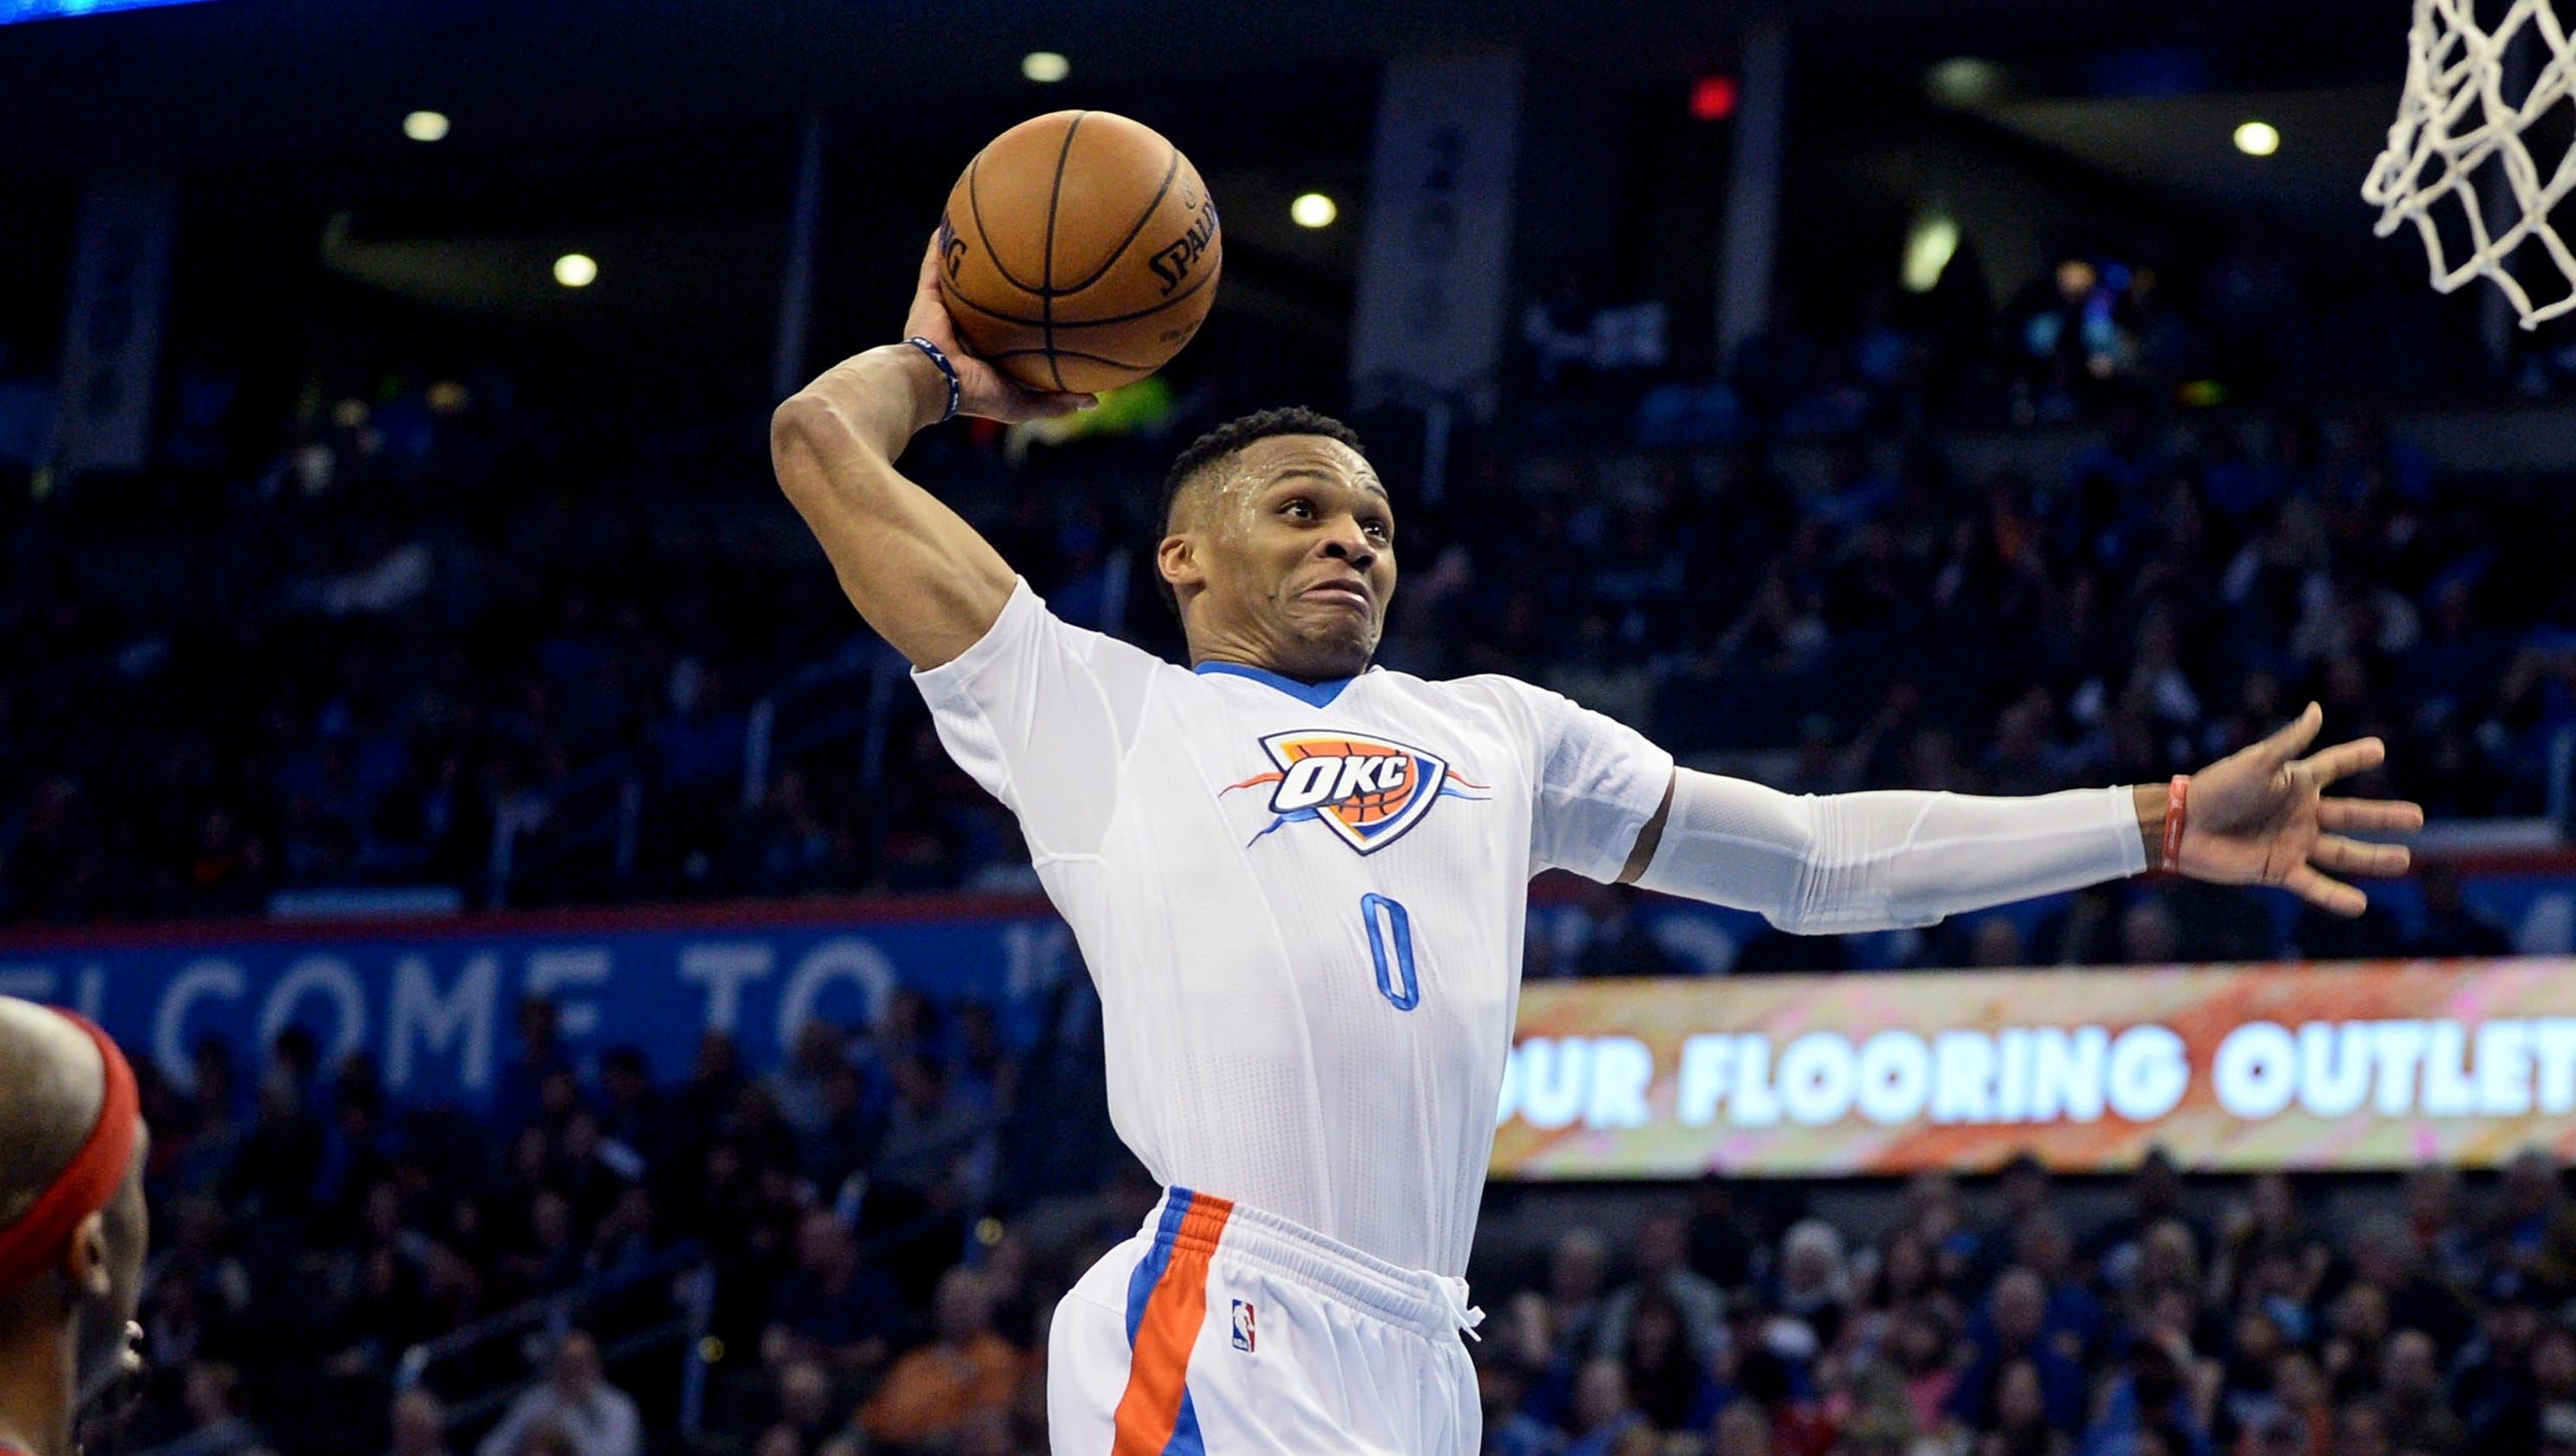 635908275358946622-2016-02-11-russell-westbrook